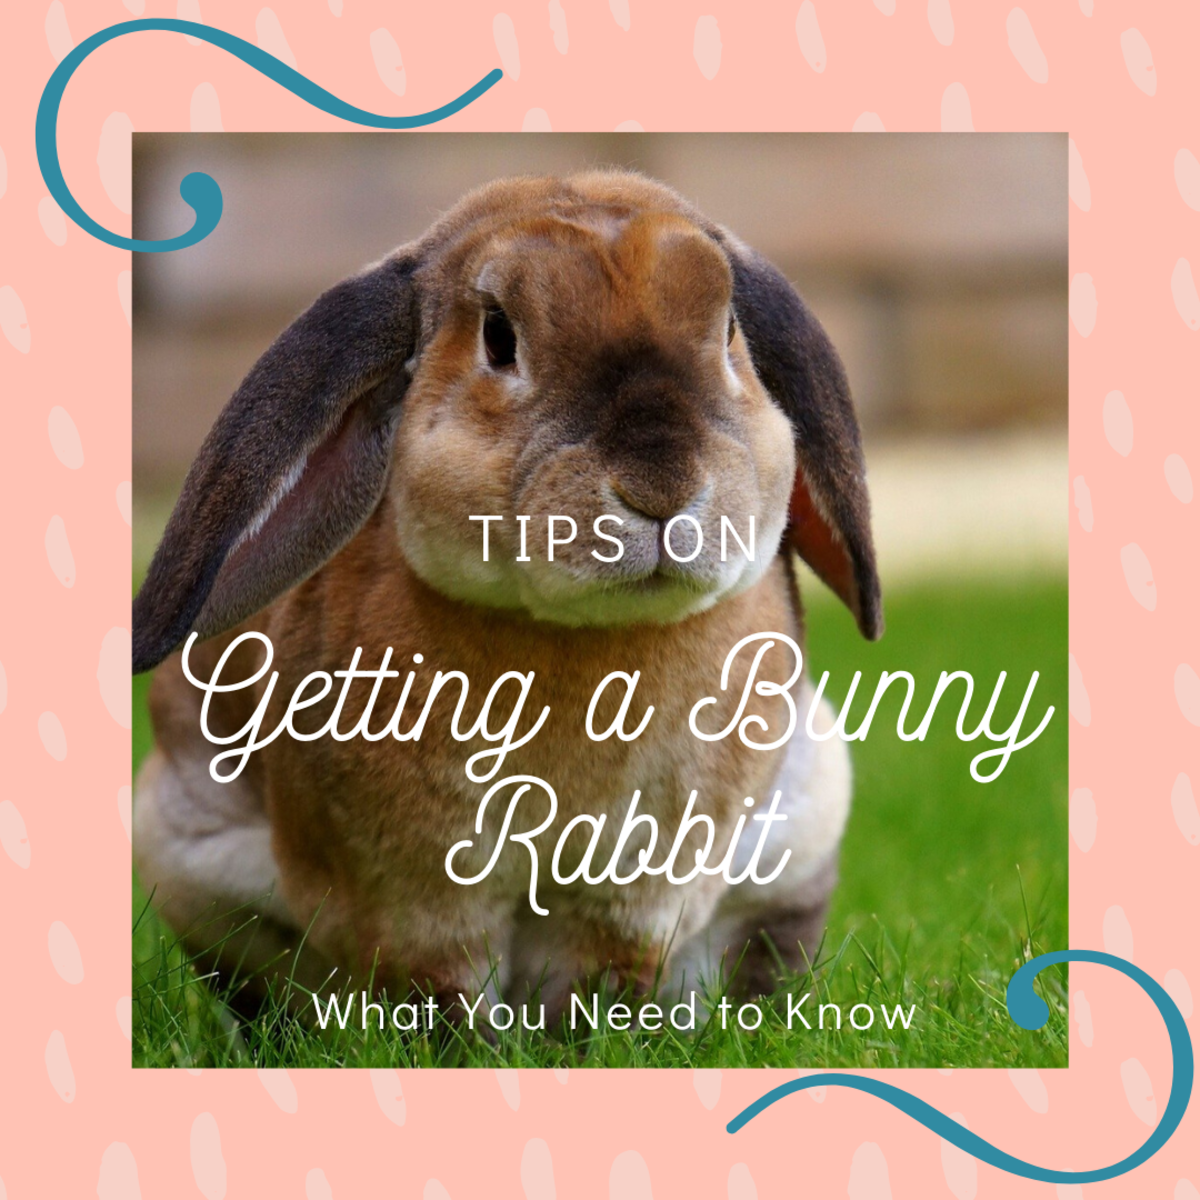 Before you decide to adopt a bunny rabbit, there are some things you need to know about them.